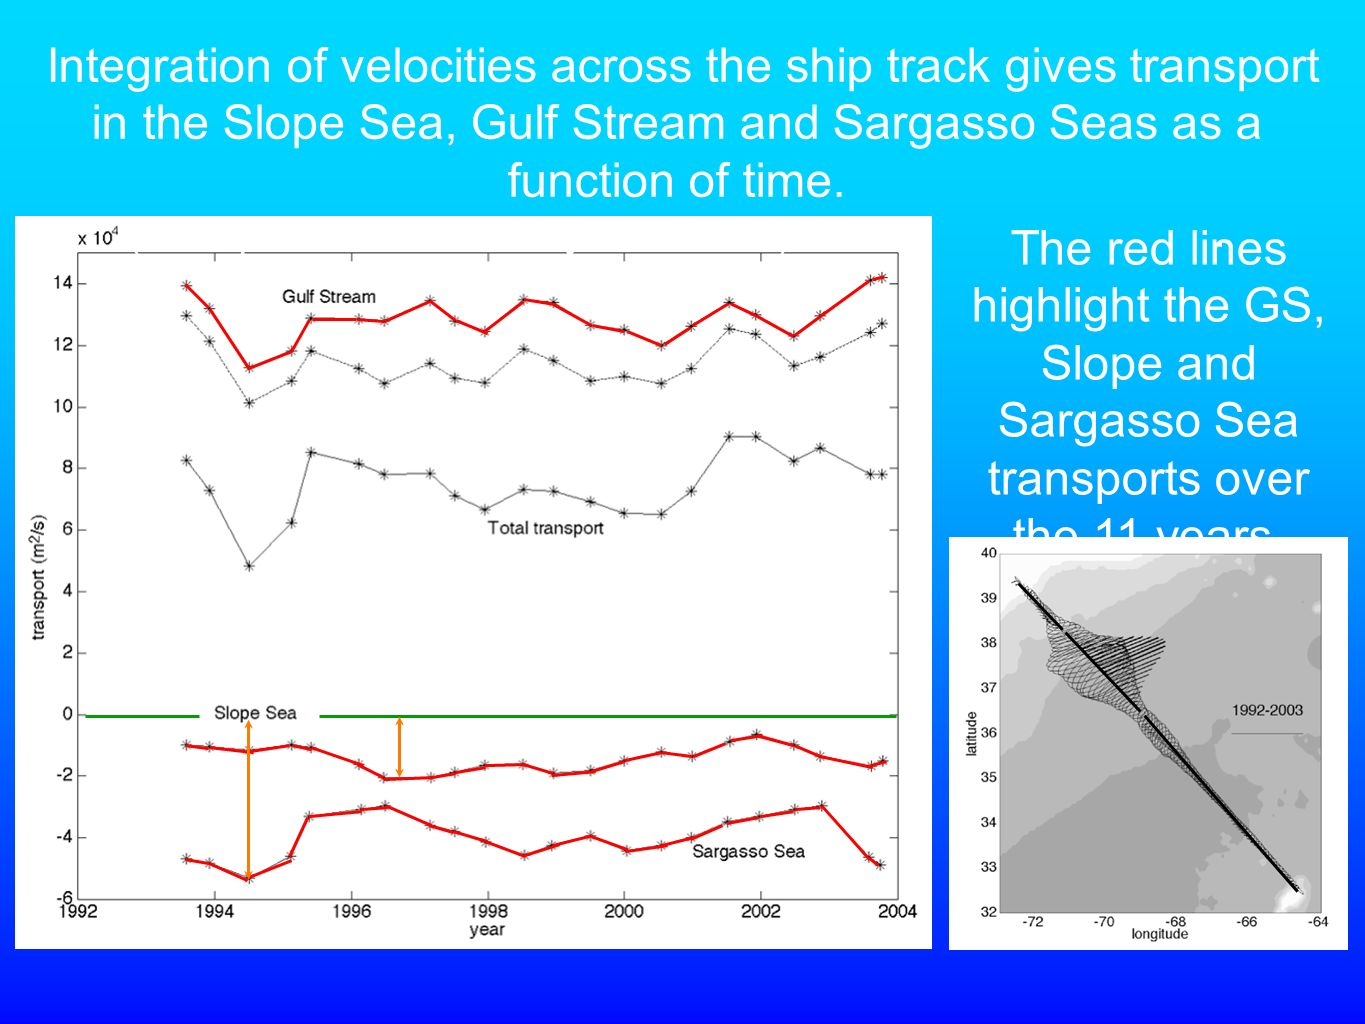 The red lines highlight the GS, Slope and Sargasso Sea transports over the 11 years.